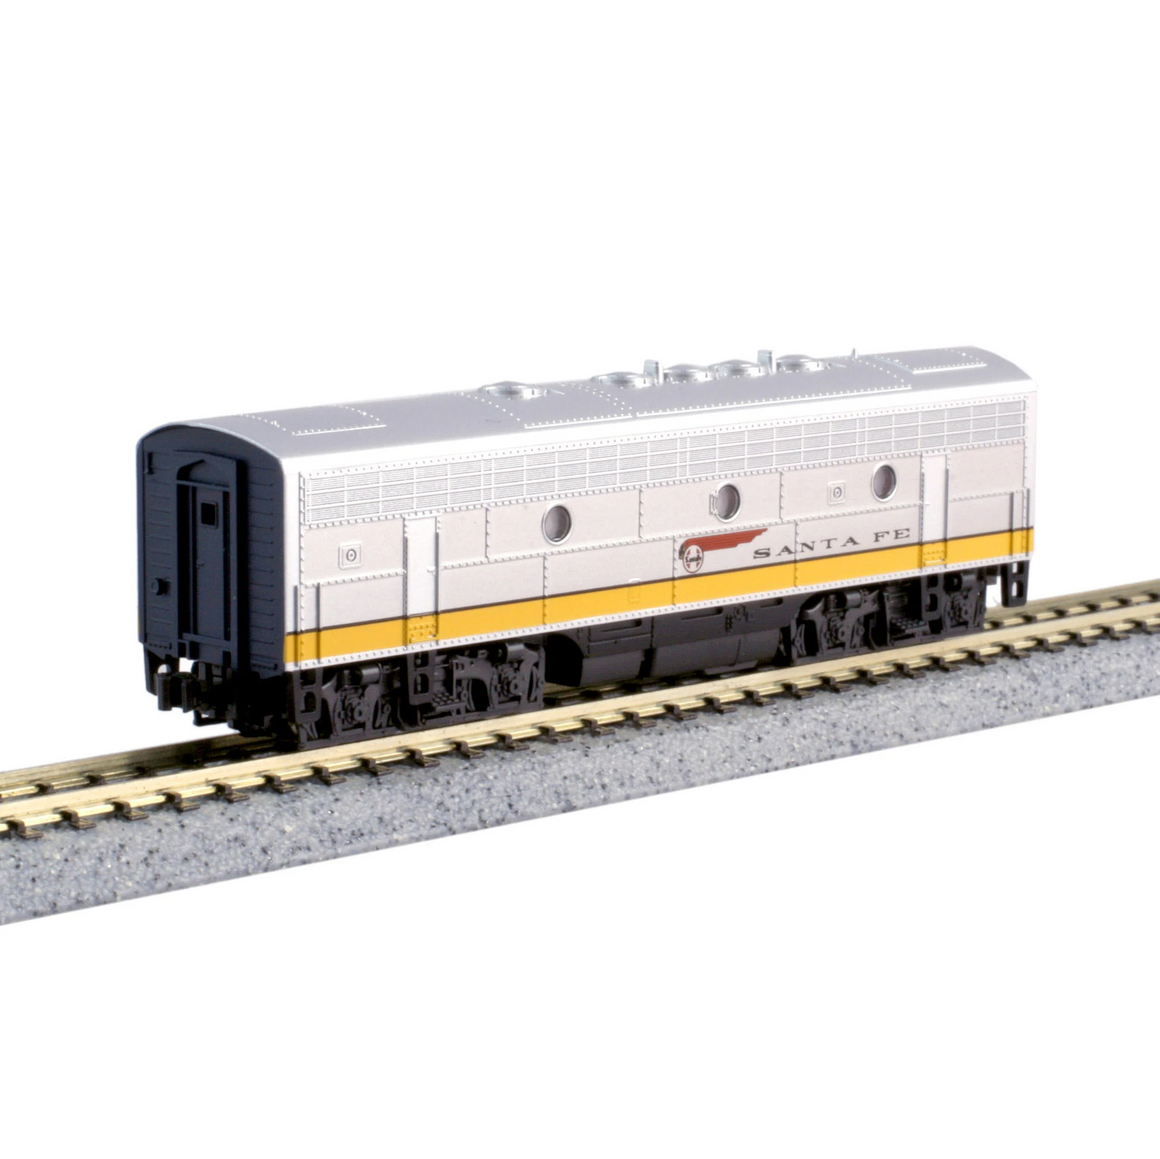 N Scale: EMD F7A & F7B Locomotives - DCC - Santa Fe